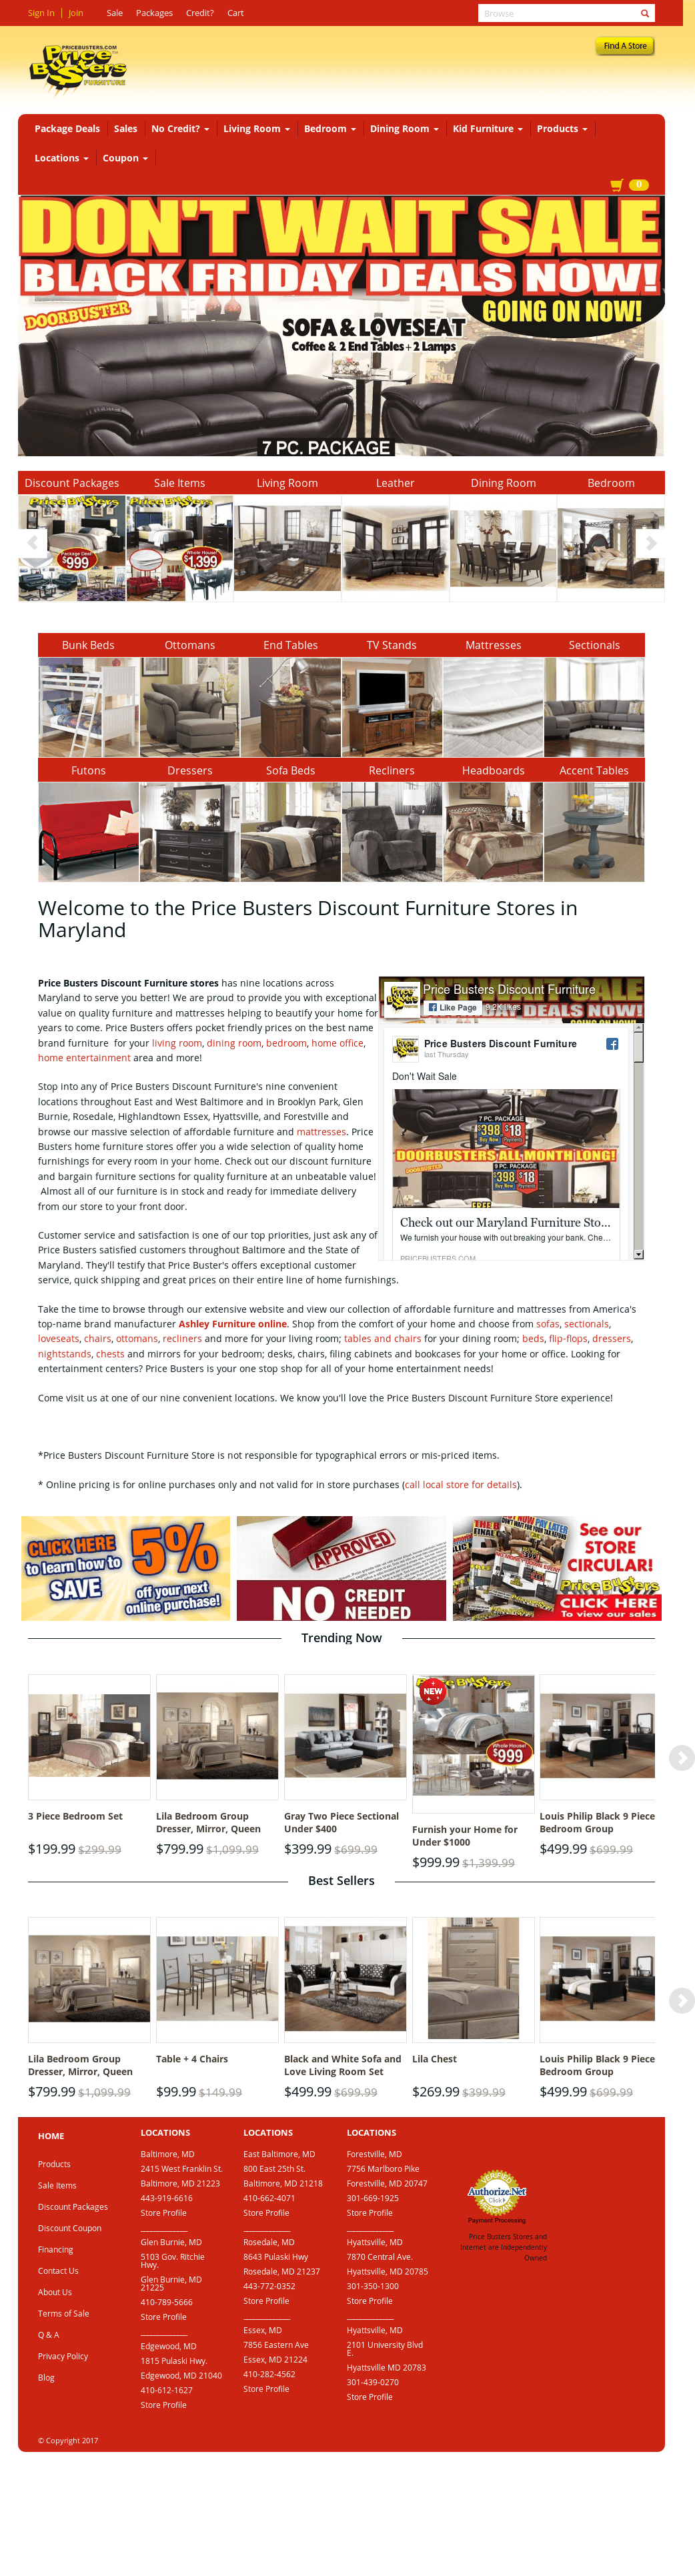 399 Furniture Store Price Busters Furniture Stores In Maryland Competitors Revenue